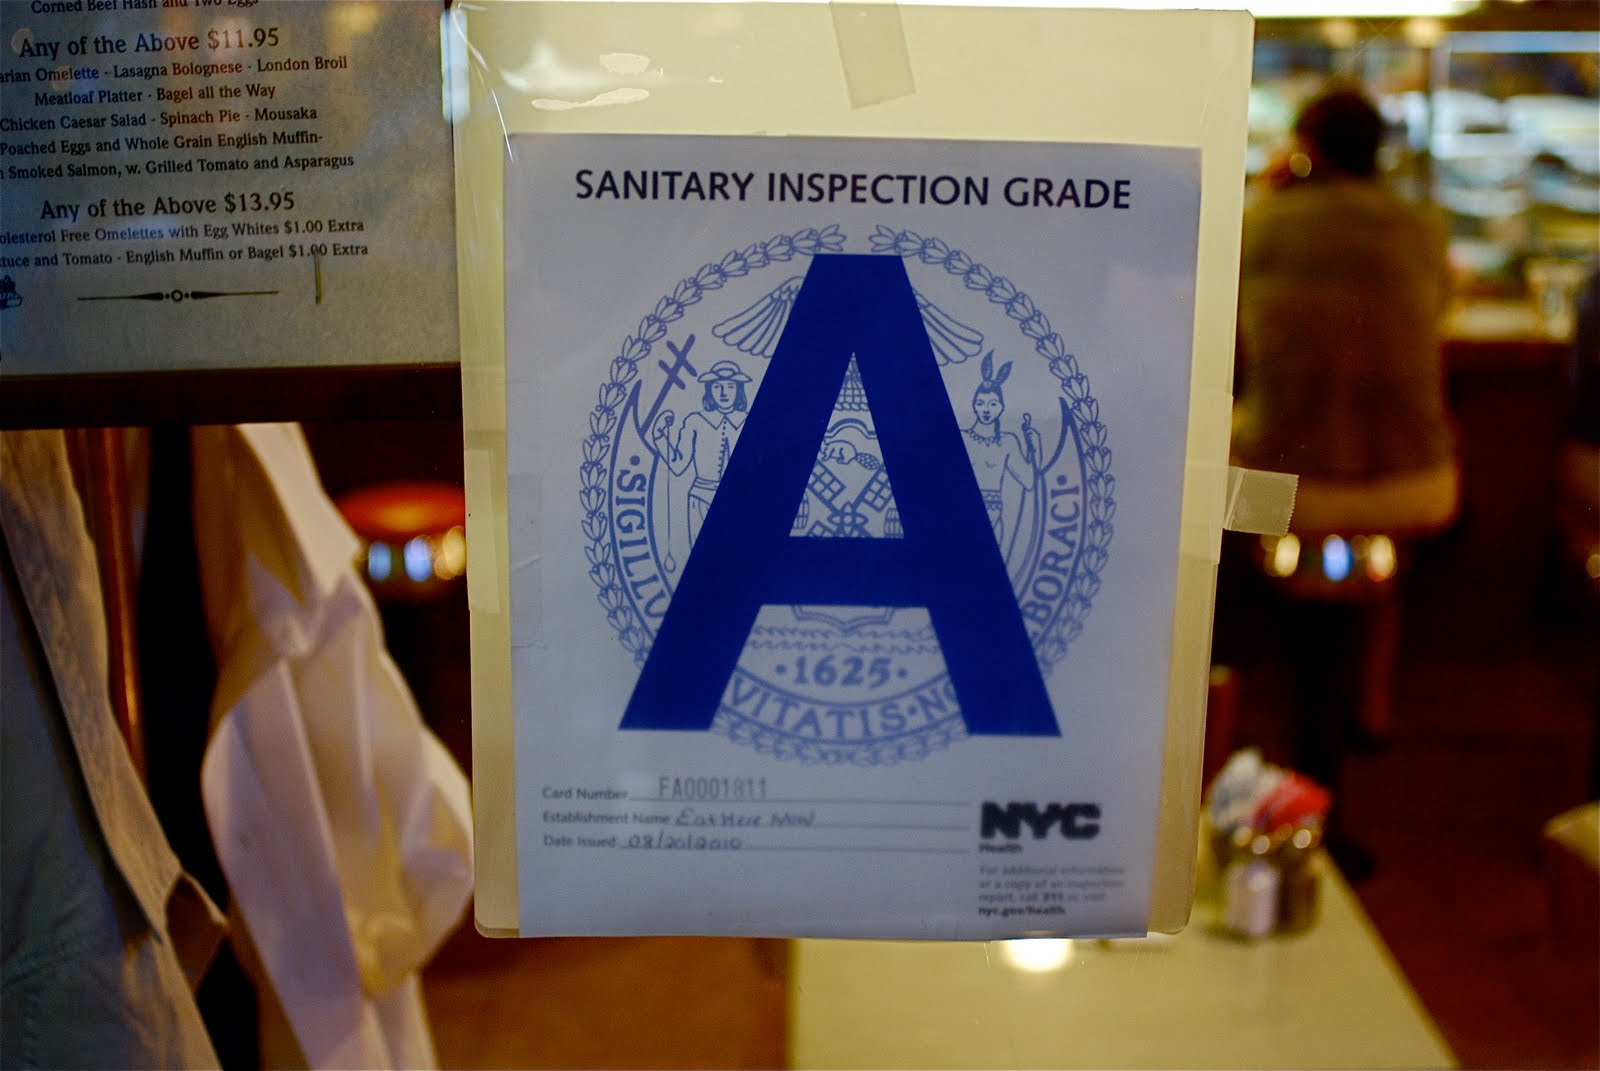 NYC ♥ NYC: Cleanliness Letter Grades In Restaurant Windows